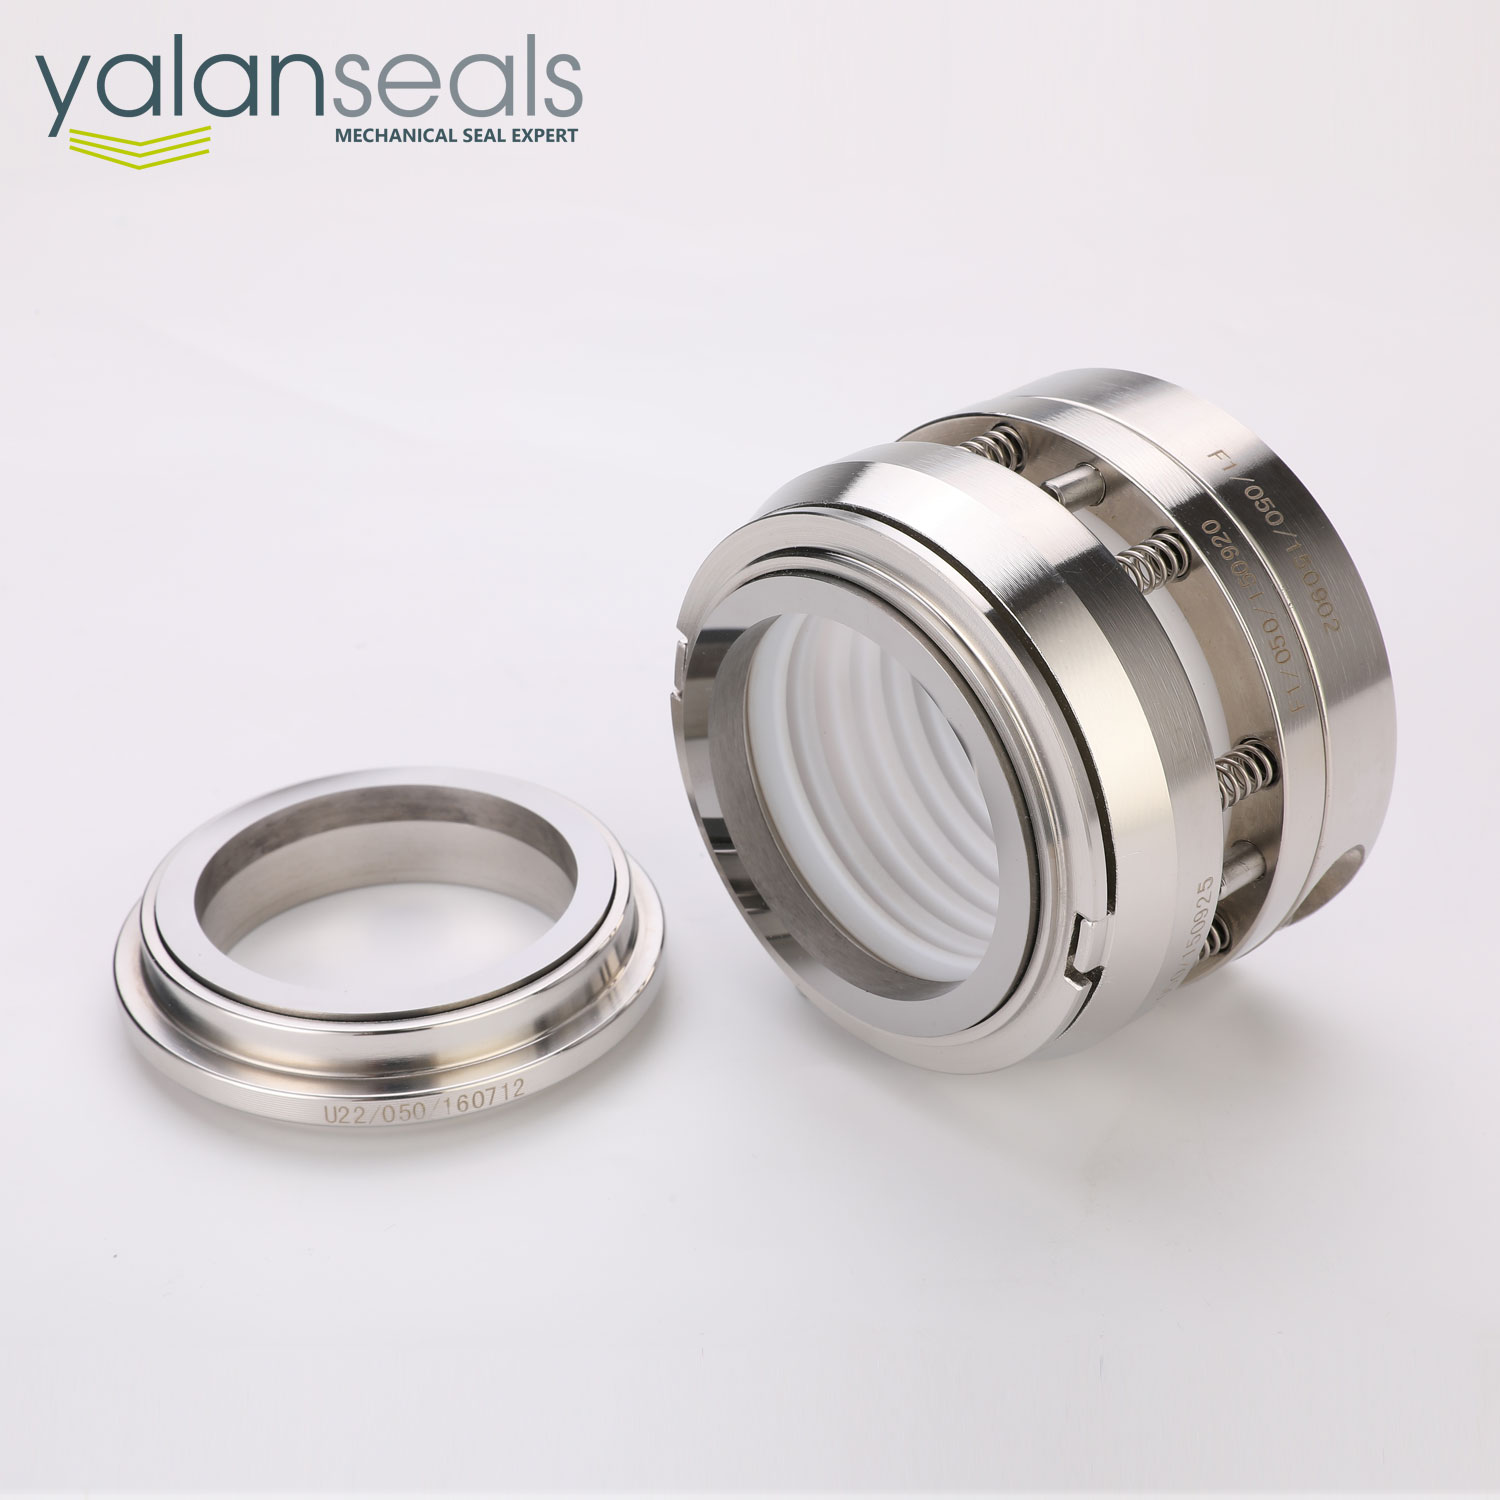 Type 169 Multiple Spring PTFE Elastomer Bellow Mechanical Seal